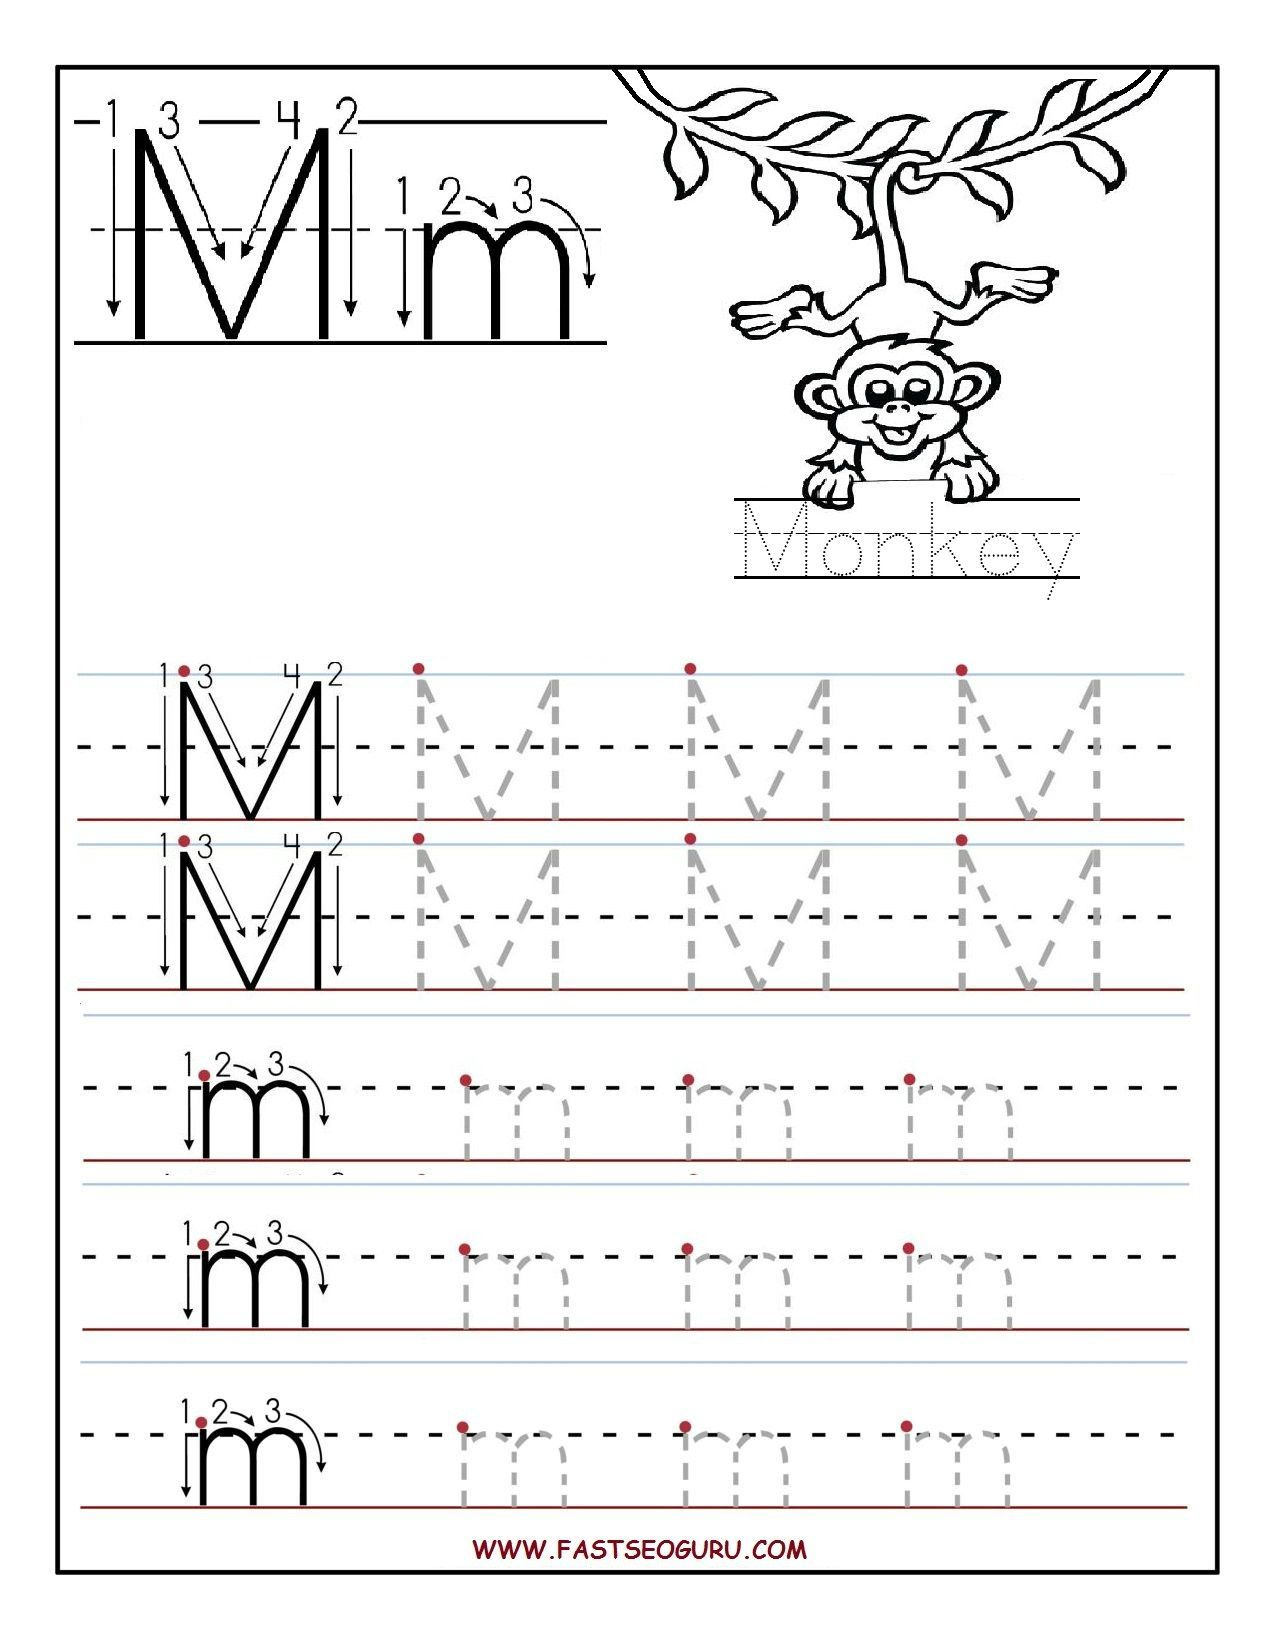 Printable Letter M Tracing Worksheets For Preschool Bobbi pertaining to Letter M Tracing Worksheet